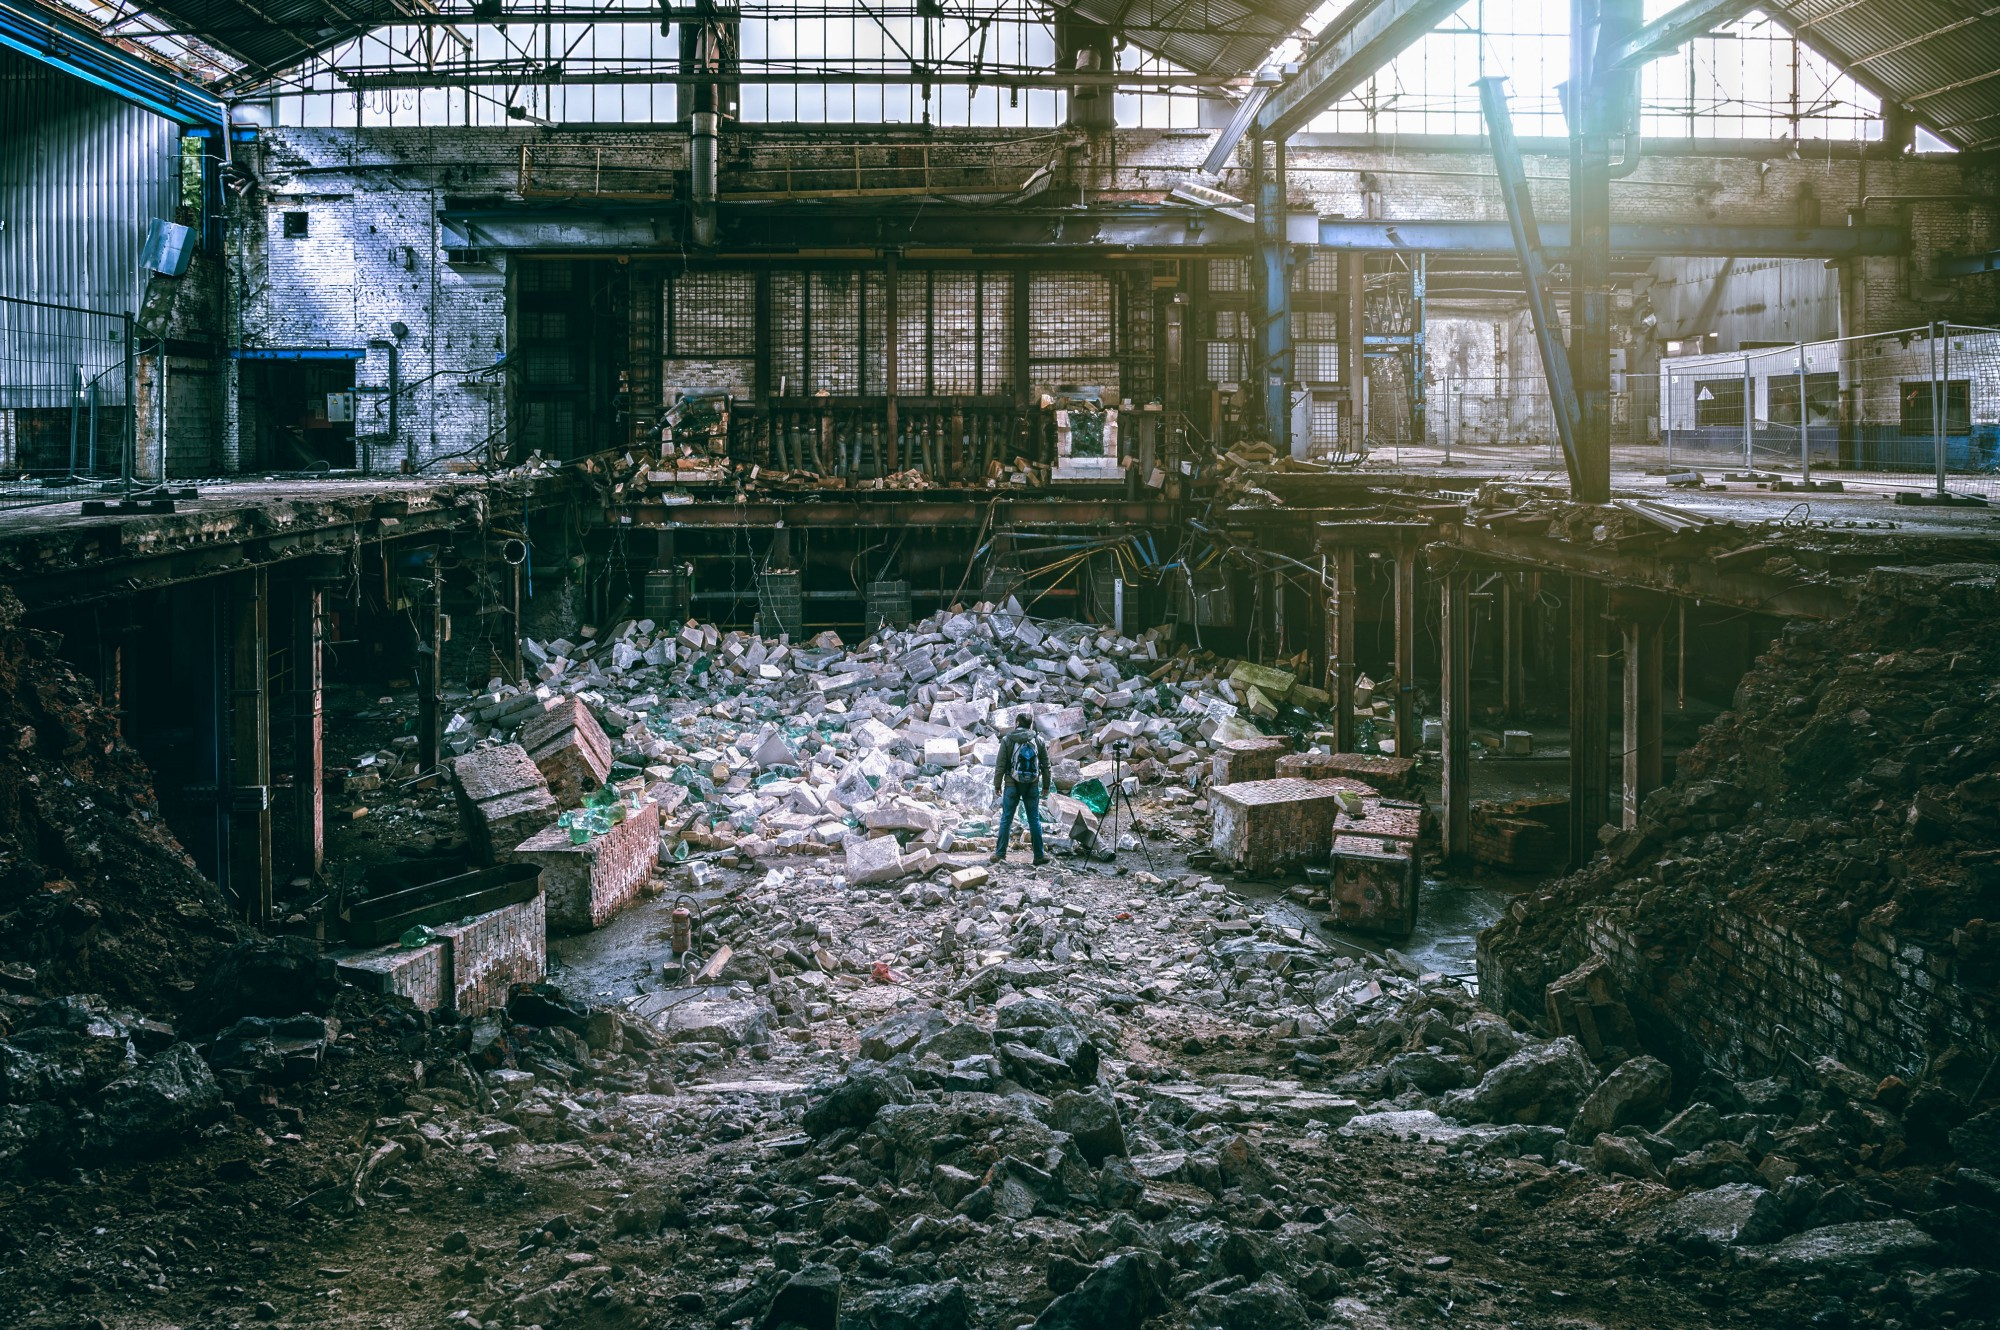 The demolished interior of what appears to have been a factory